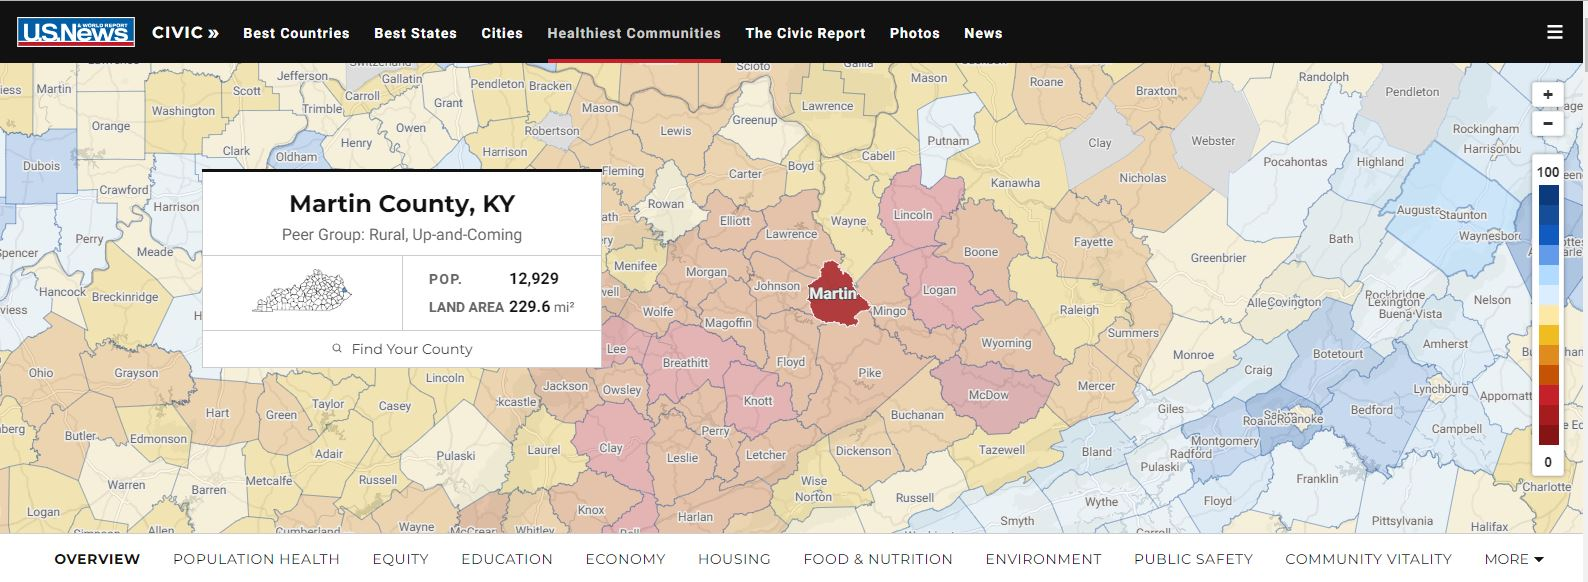 screenshot of interactive u s news and world report map showing data for each kentucky county click here to access the actual map